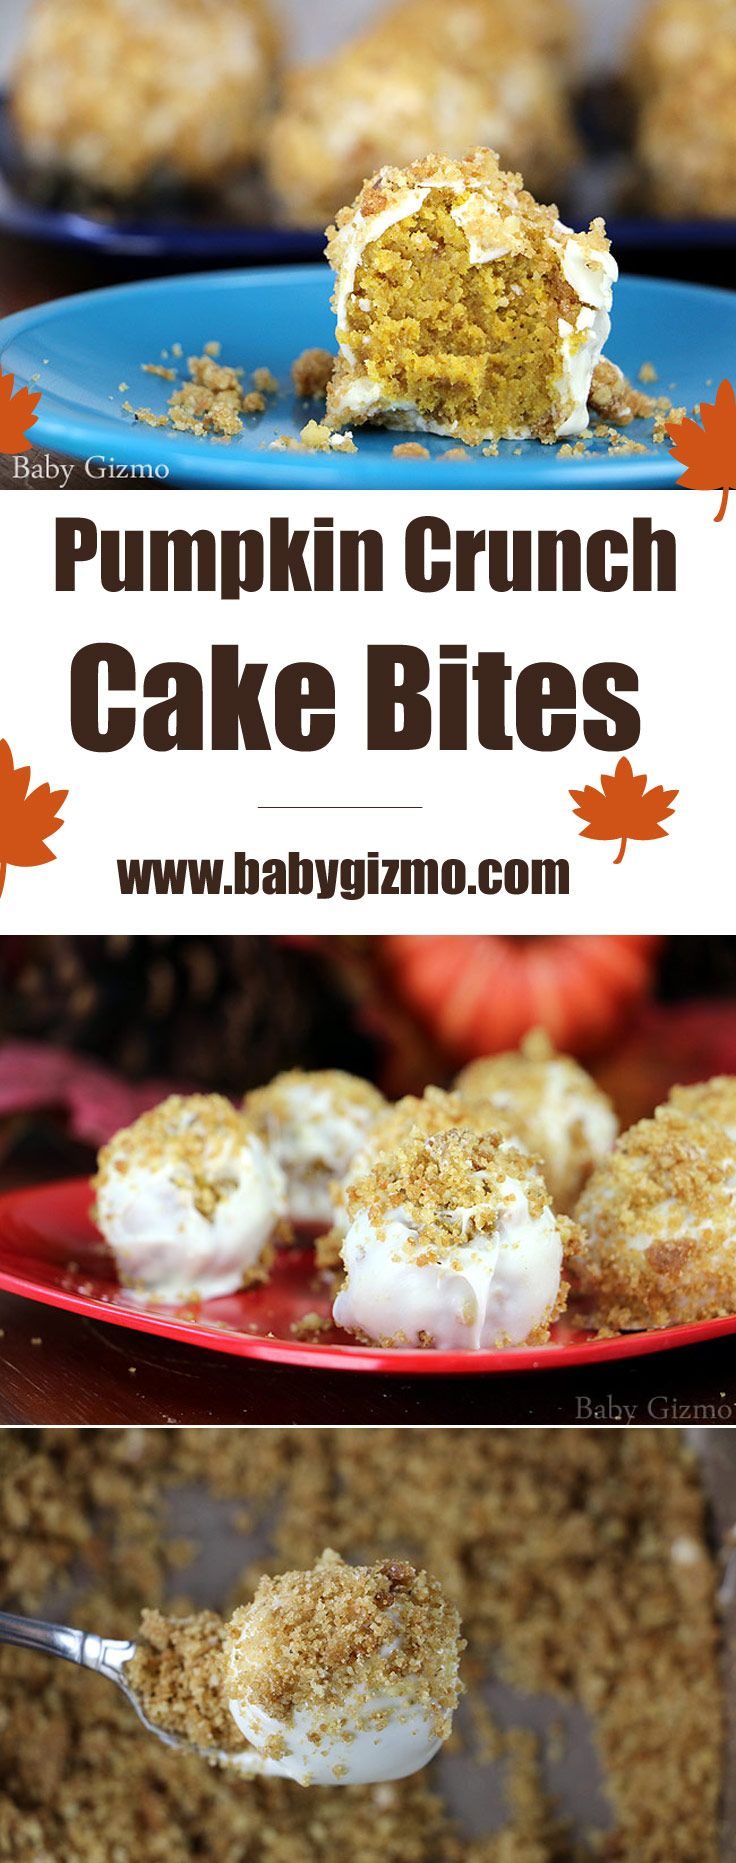 These are cakes bites made with my favorite cake ever - Pumpkin Crunch Cake! These bite-sized cake balls make any holiday that much better! #cake #cakepops